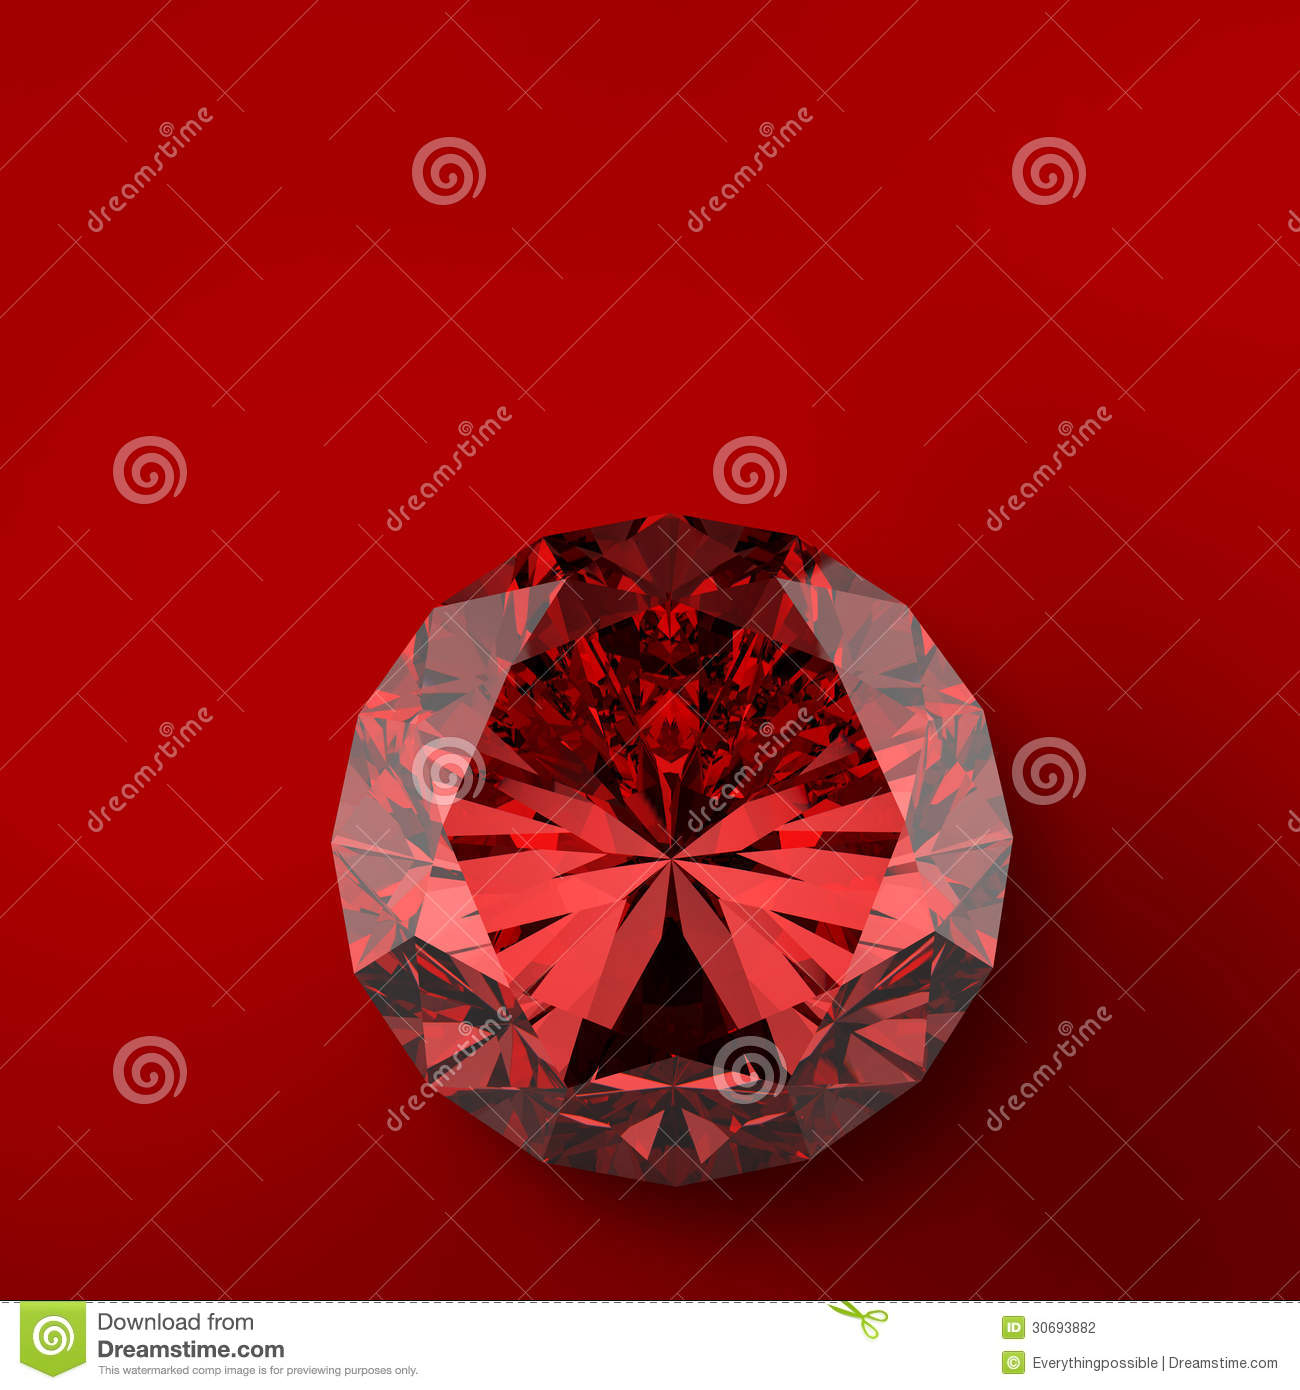 red diamonds background-#15